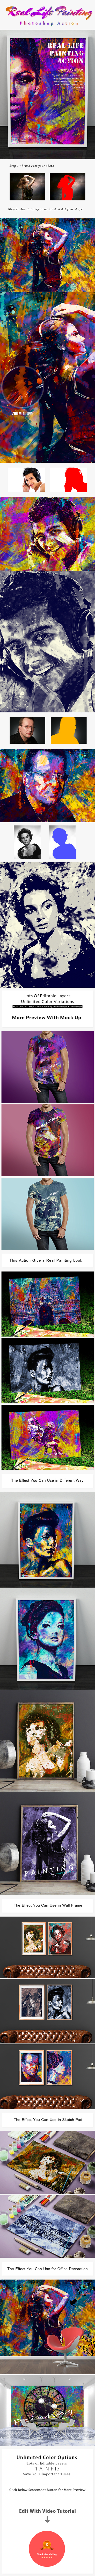 Real Life Painting Action - Photo Effects Actions